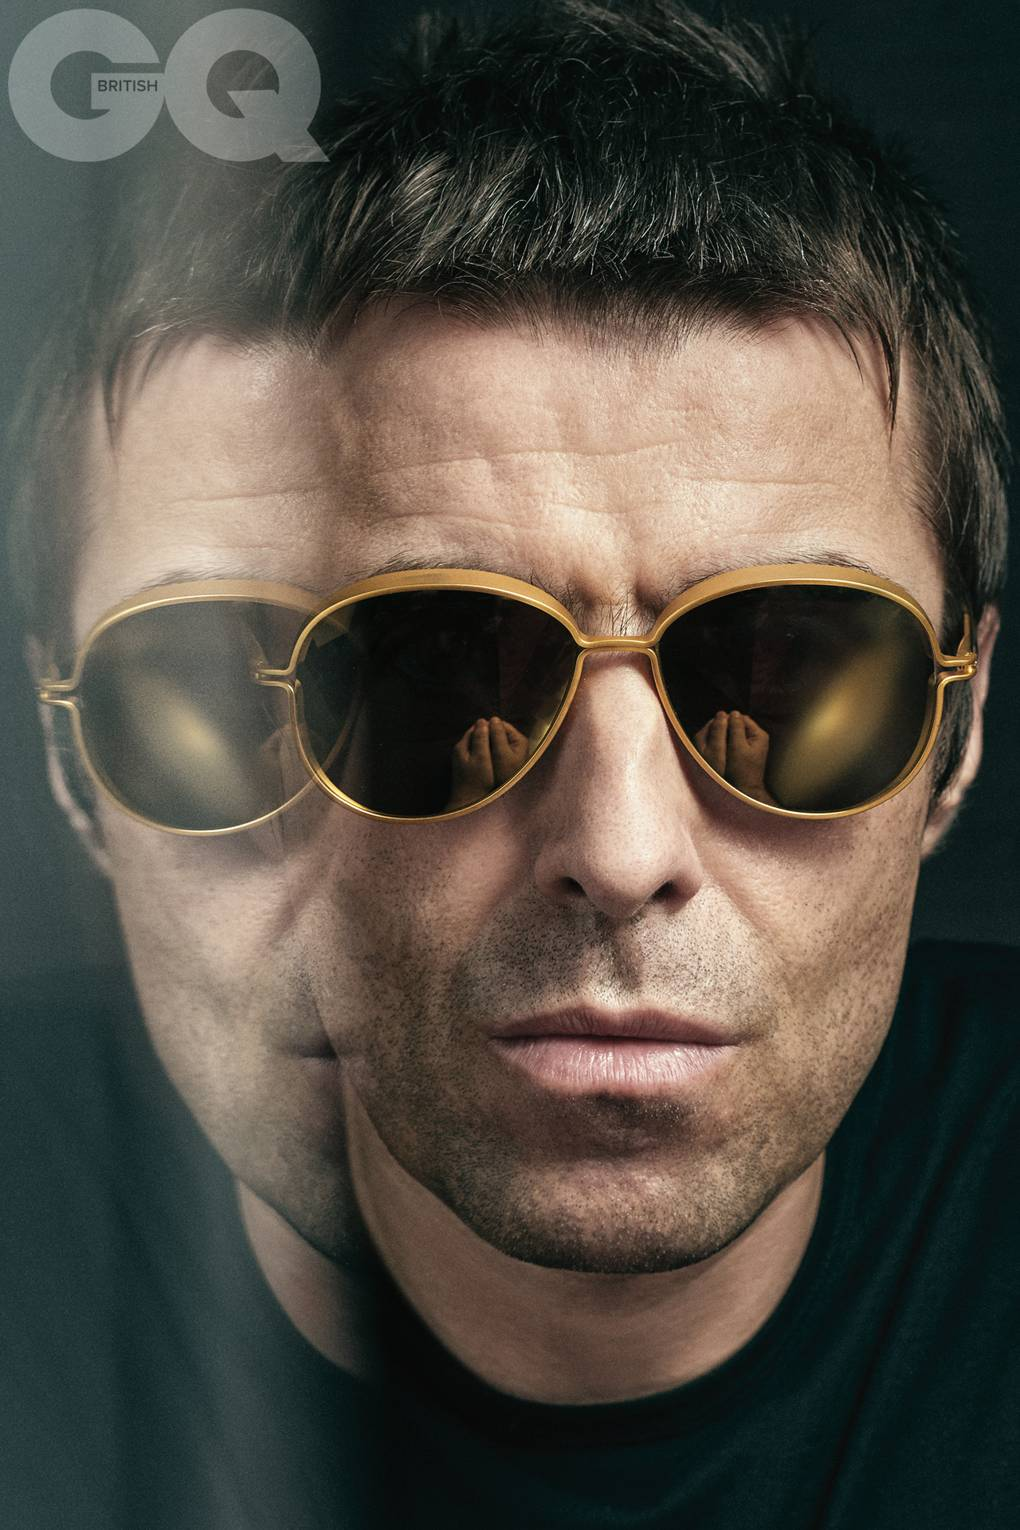 e6003dddb7eb Liam Gallagher interview  GQ s September cover star